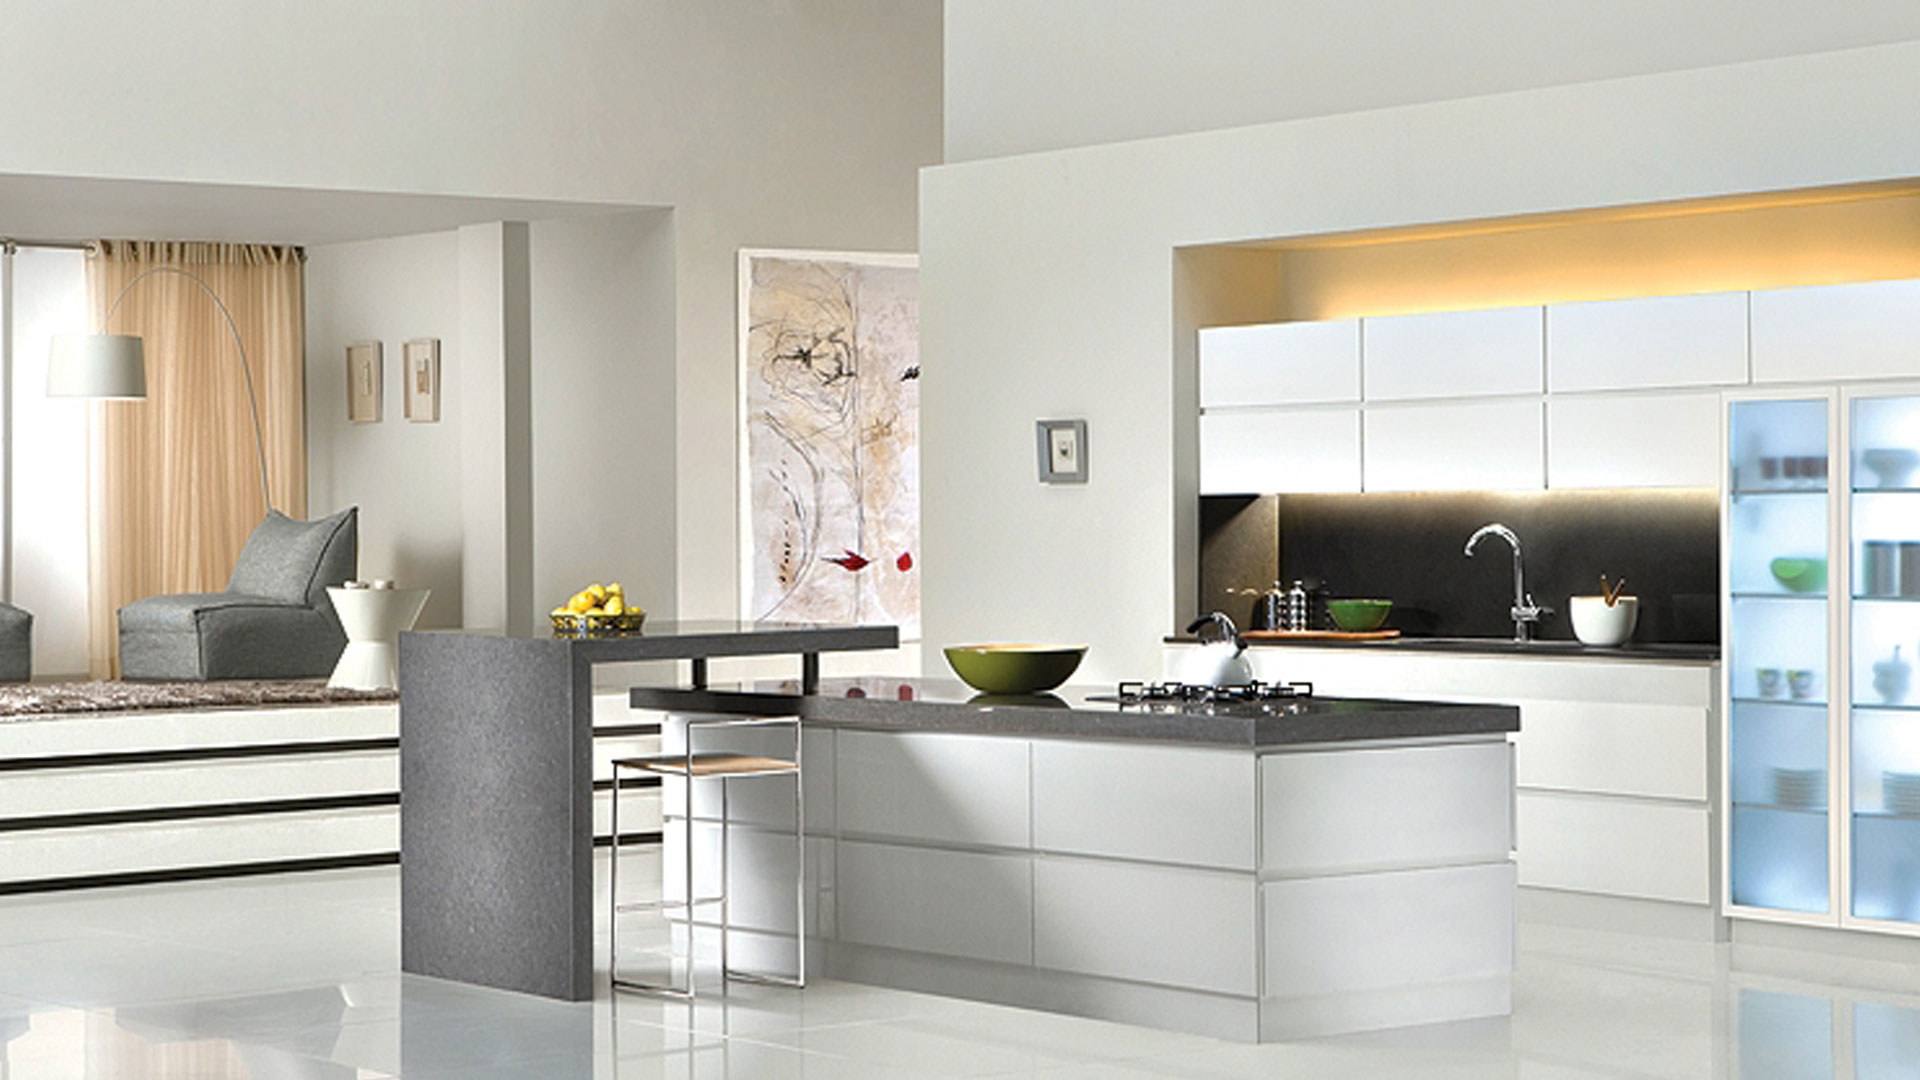 kitchen designing exciting designing small kitchen designs creative minimalist kitchen design